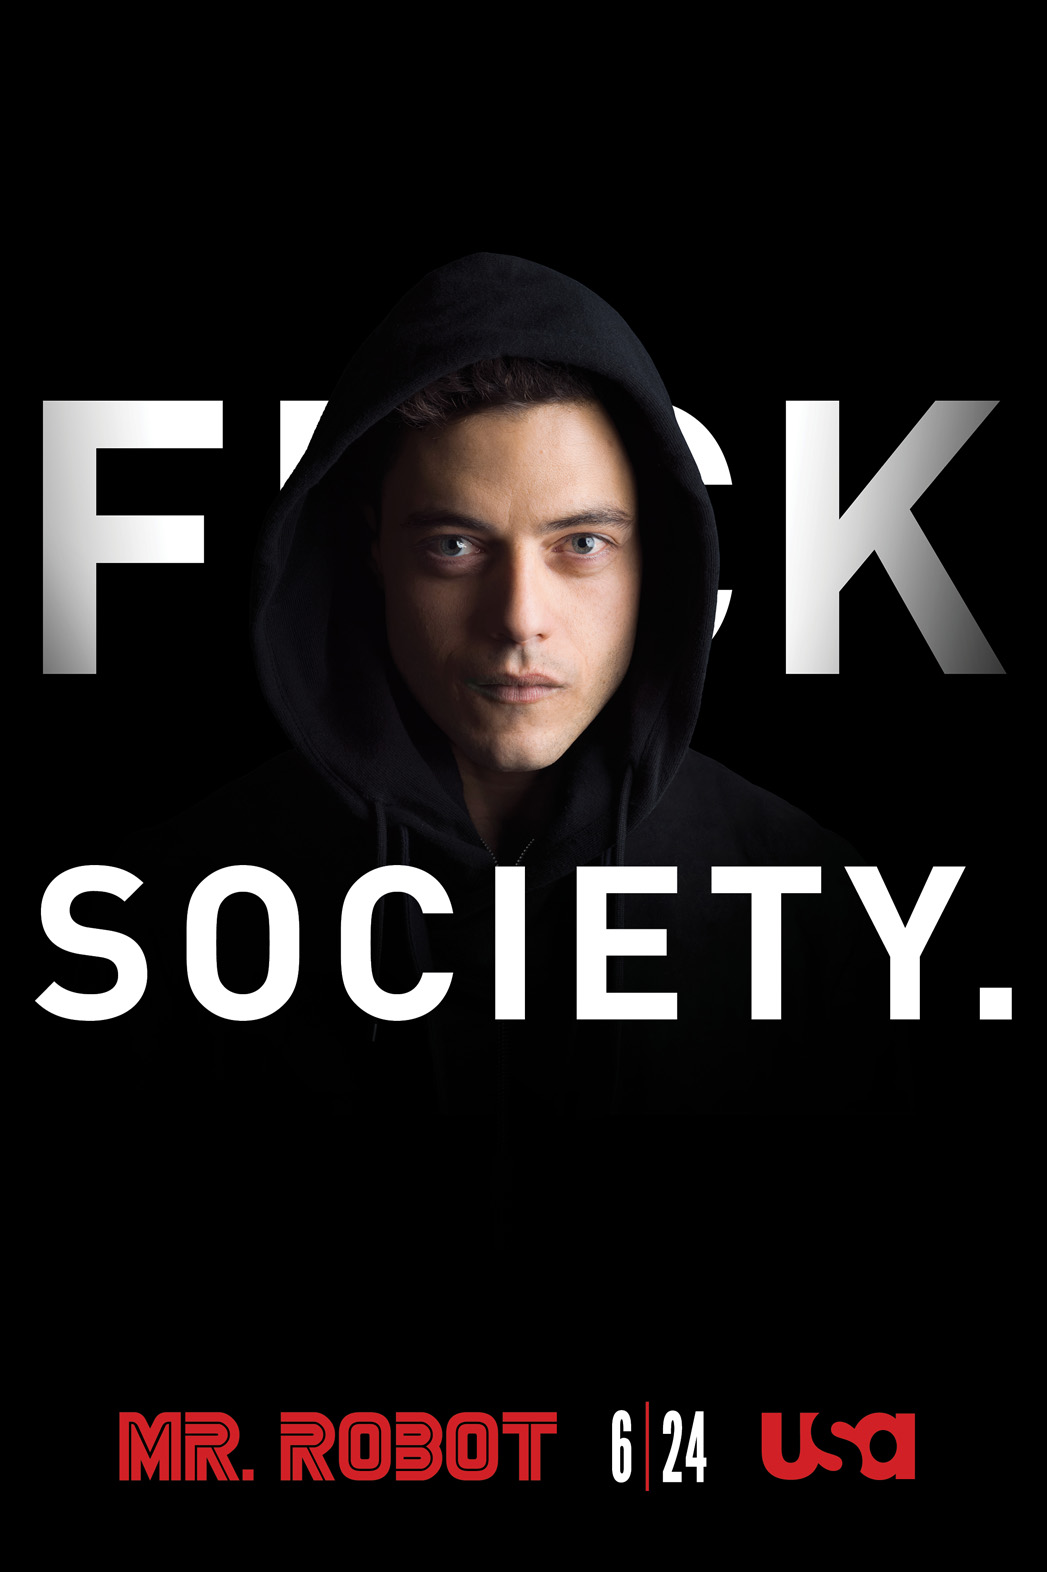 Mr. Robot Promotional Poster